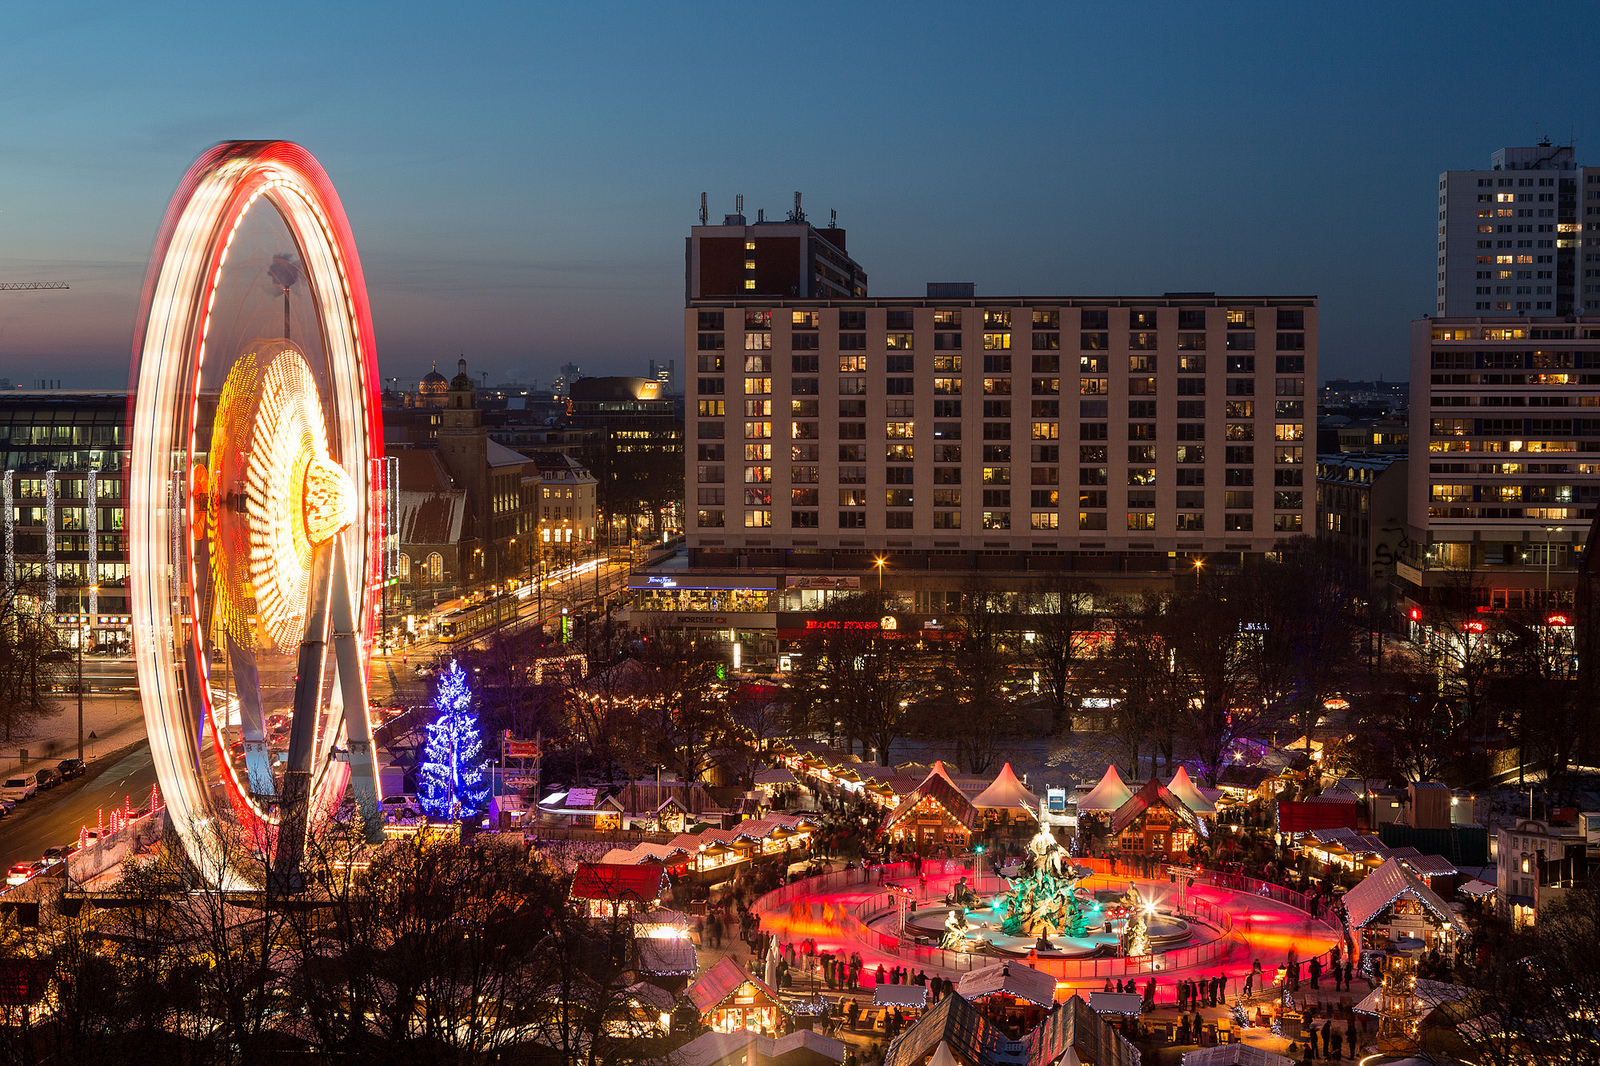 Christmas market in Berlin, Germany. Credit visitBerling/Wolfgang Scholvien